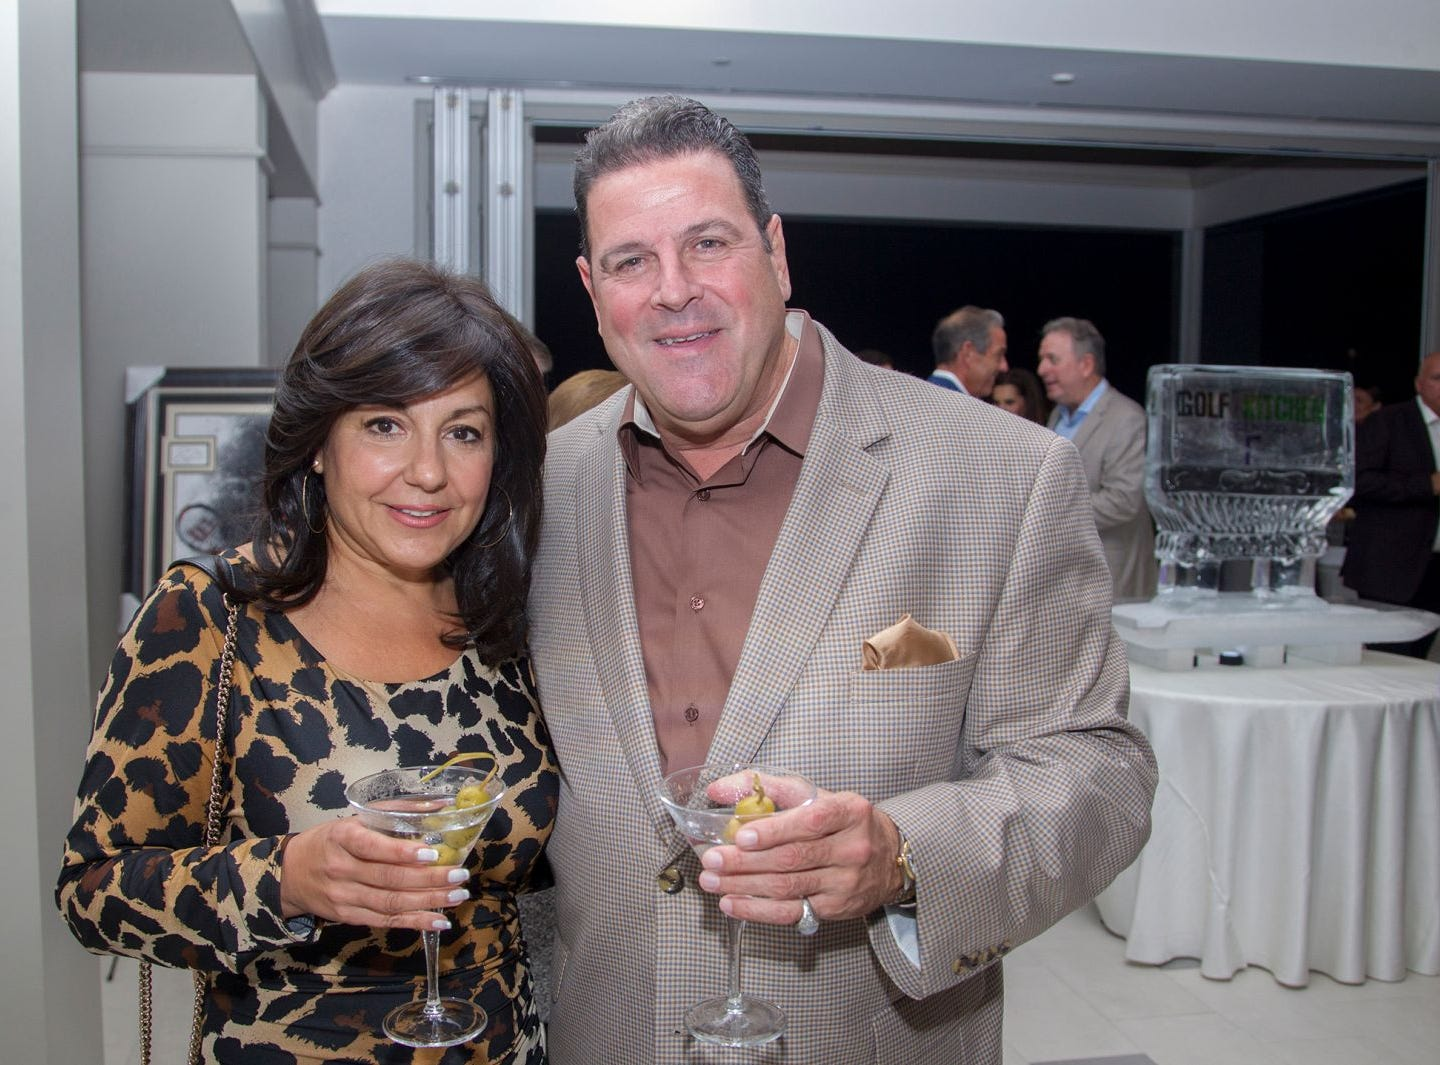 "Michele and Michael Silviano. Edgewood Country Club, in partnership with Golf Kitchen magazine, host the ""Golf Kitchen/Edgewood Fine Dining Soirée and Golf Kitchen Culinary Excellence Awards."" 10/04/2018"